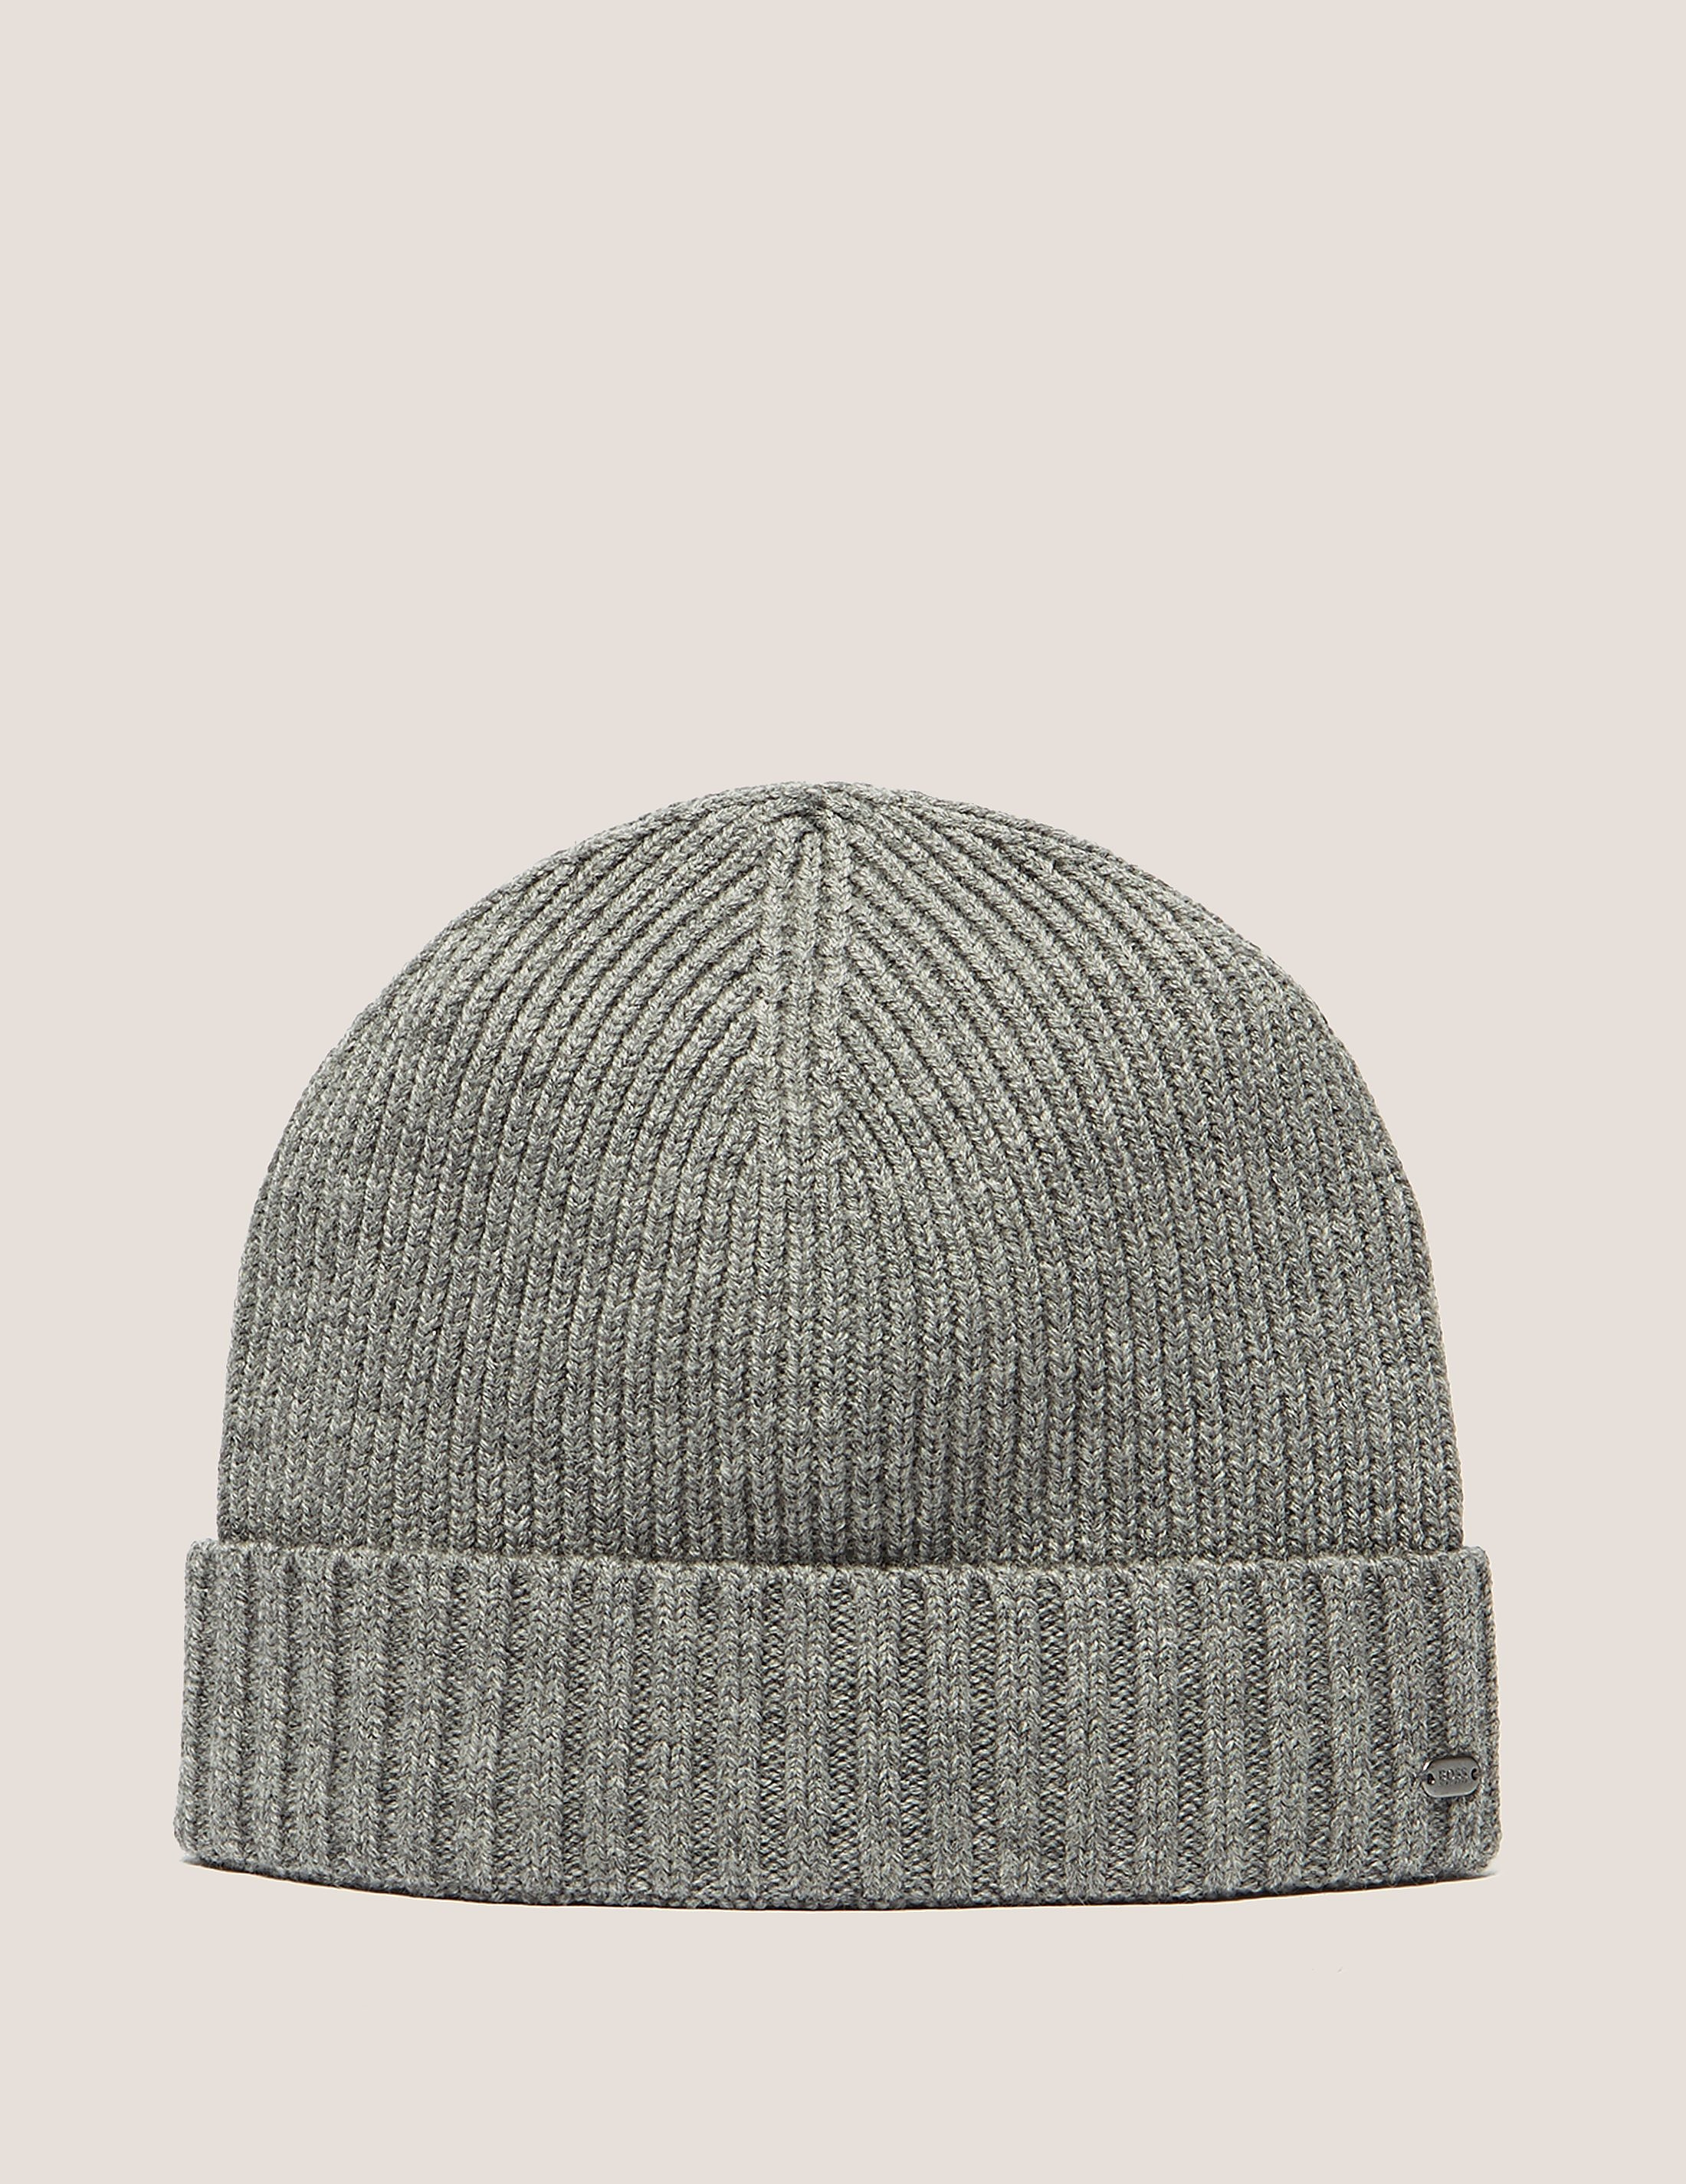 BOSS Green Ribbed Beanie